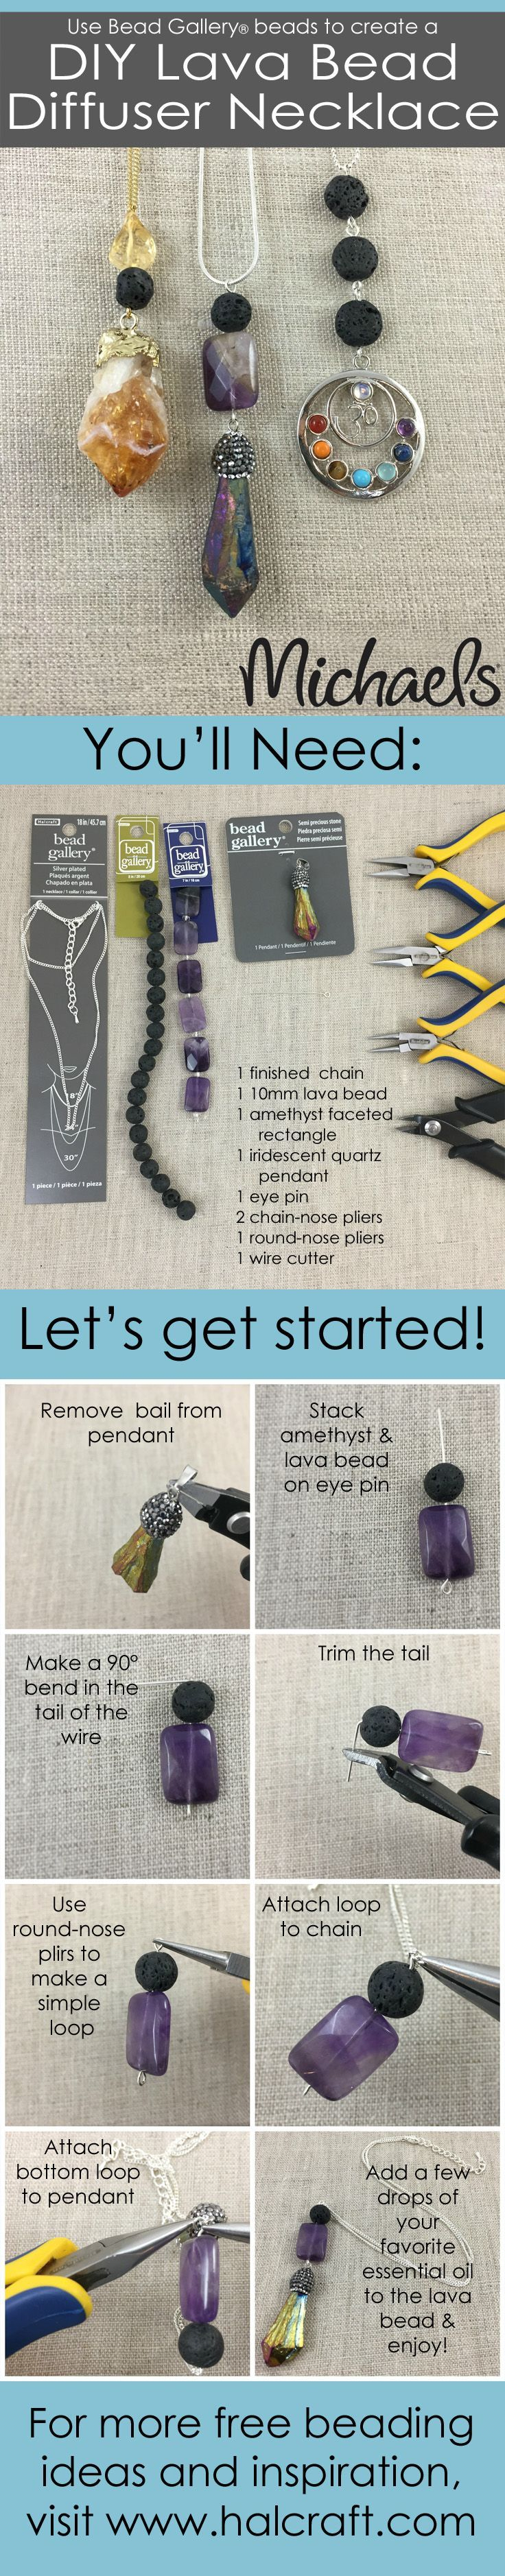 DIY Lava diffuser necklaces using Bead Gallery beads #madewithmichaels